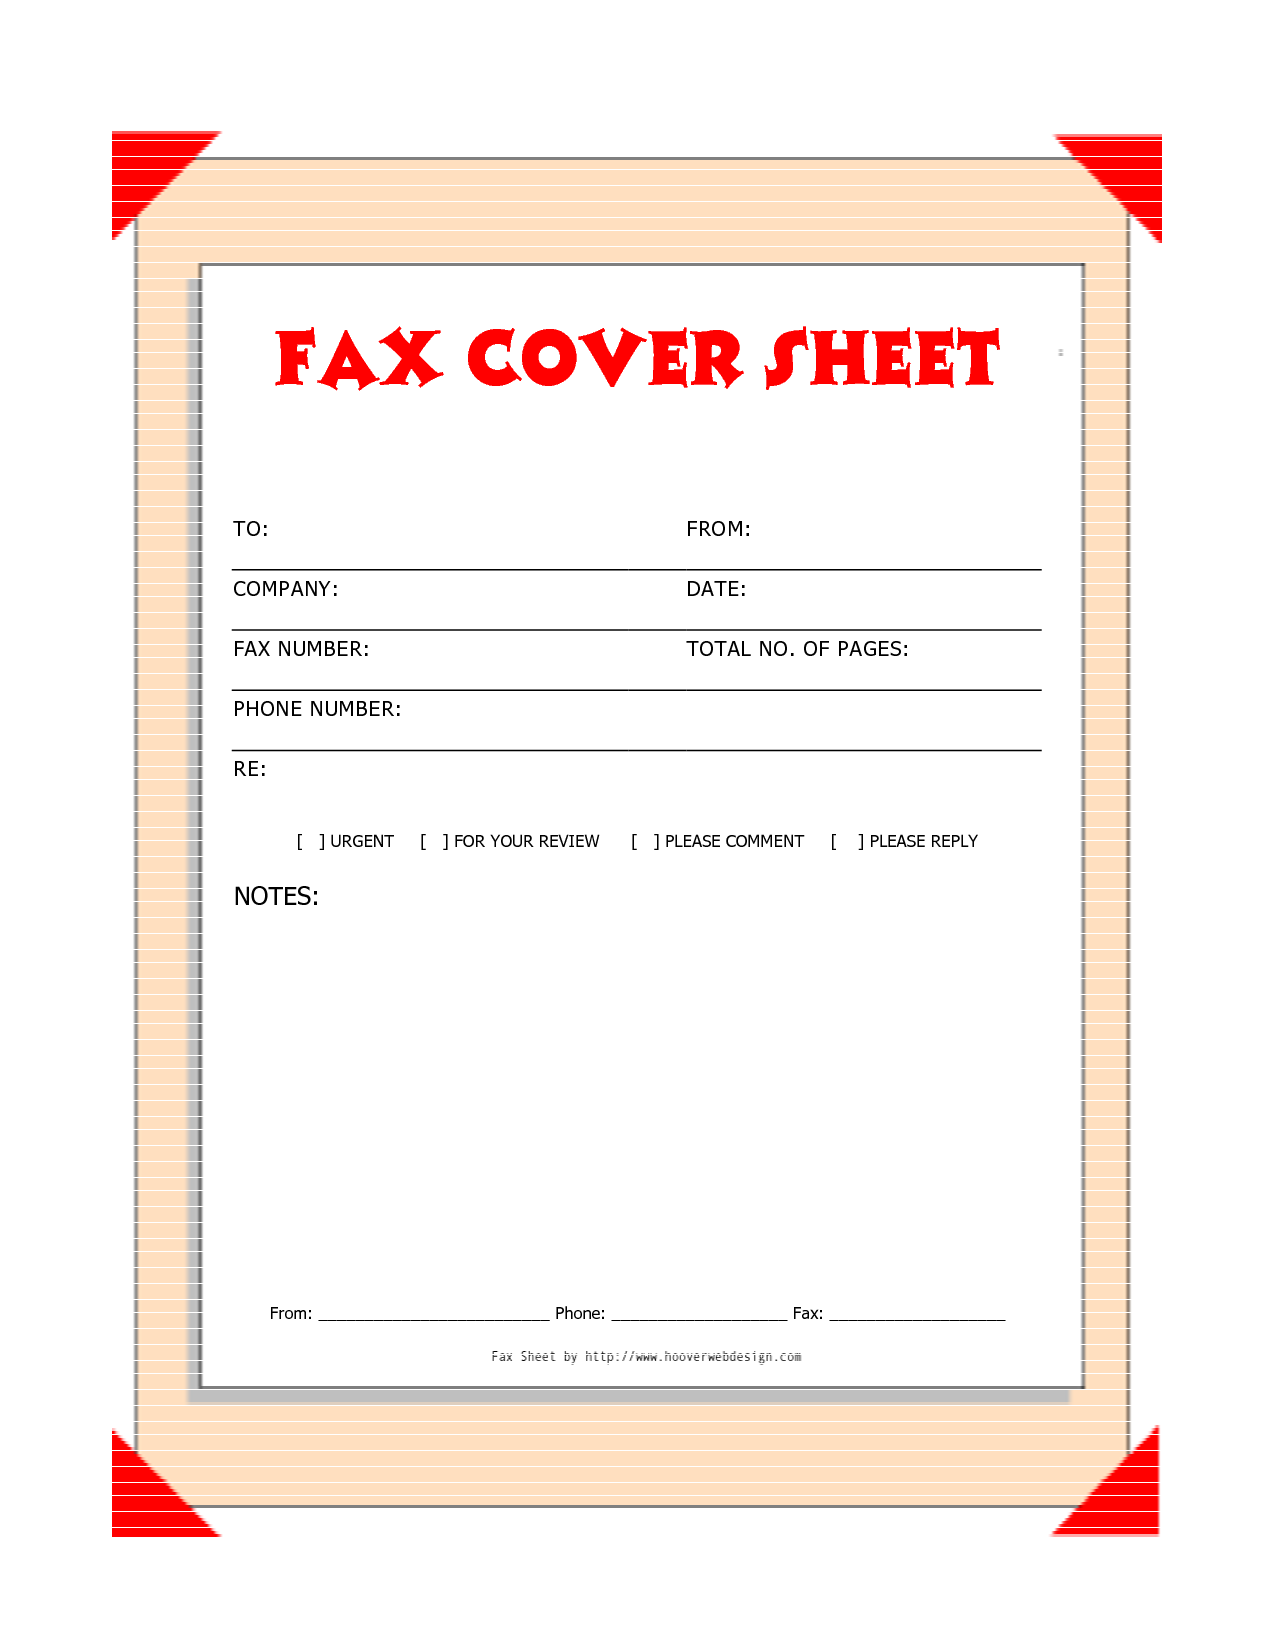 Free Downloads Fax Covers Sheets | Free Printable Fax Cover Sheet Template  Red   Download As  Free Fax Template Cover Sheet Word